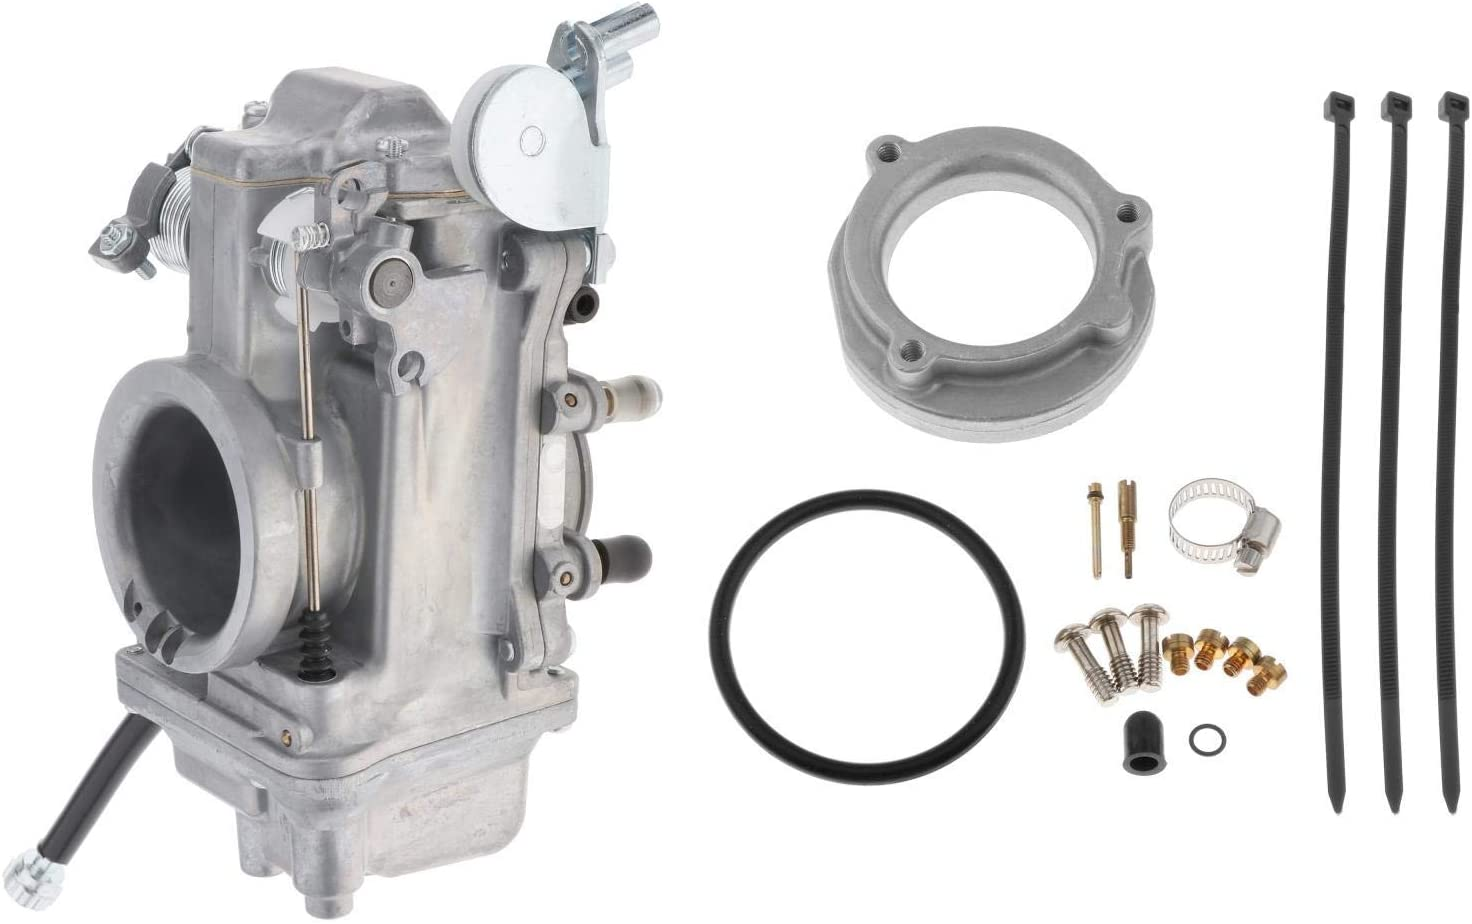 New Aluminum Factory outlet Carburetor Mount Engine Spare Year-end gift Fi Part